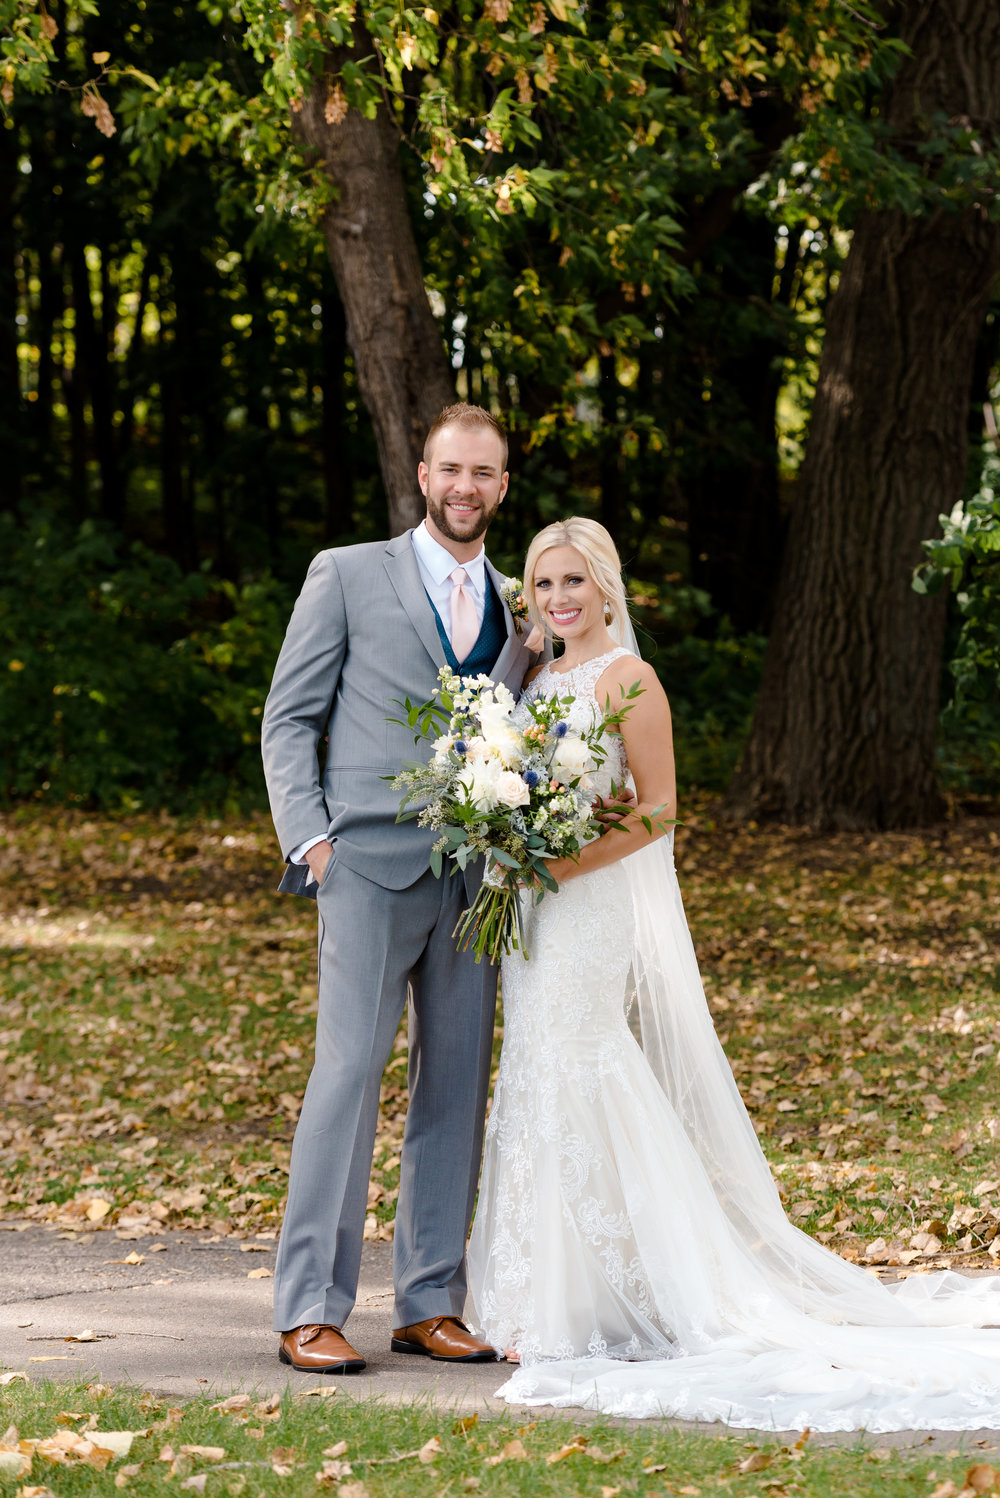 Mikenna and Matt - The Woods Chapel Wedding-335.jpg